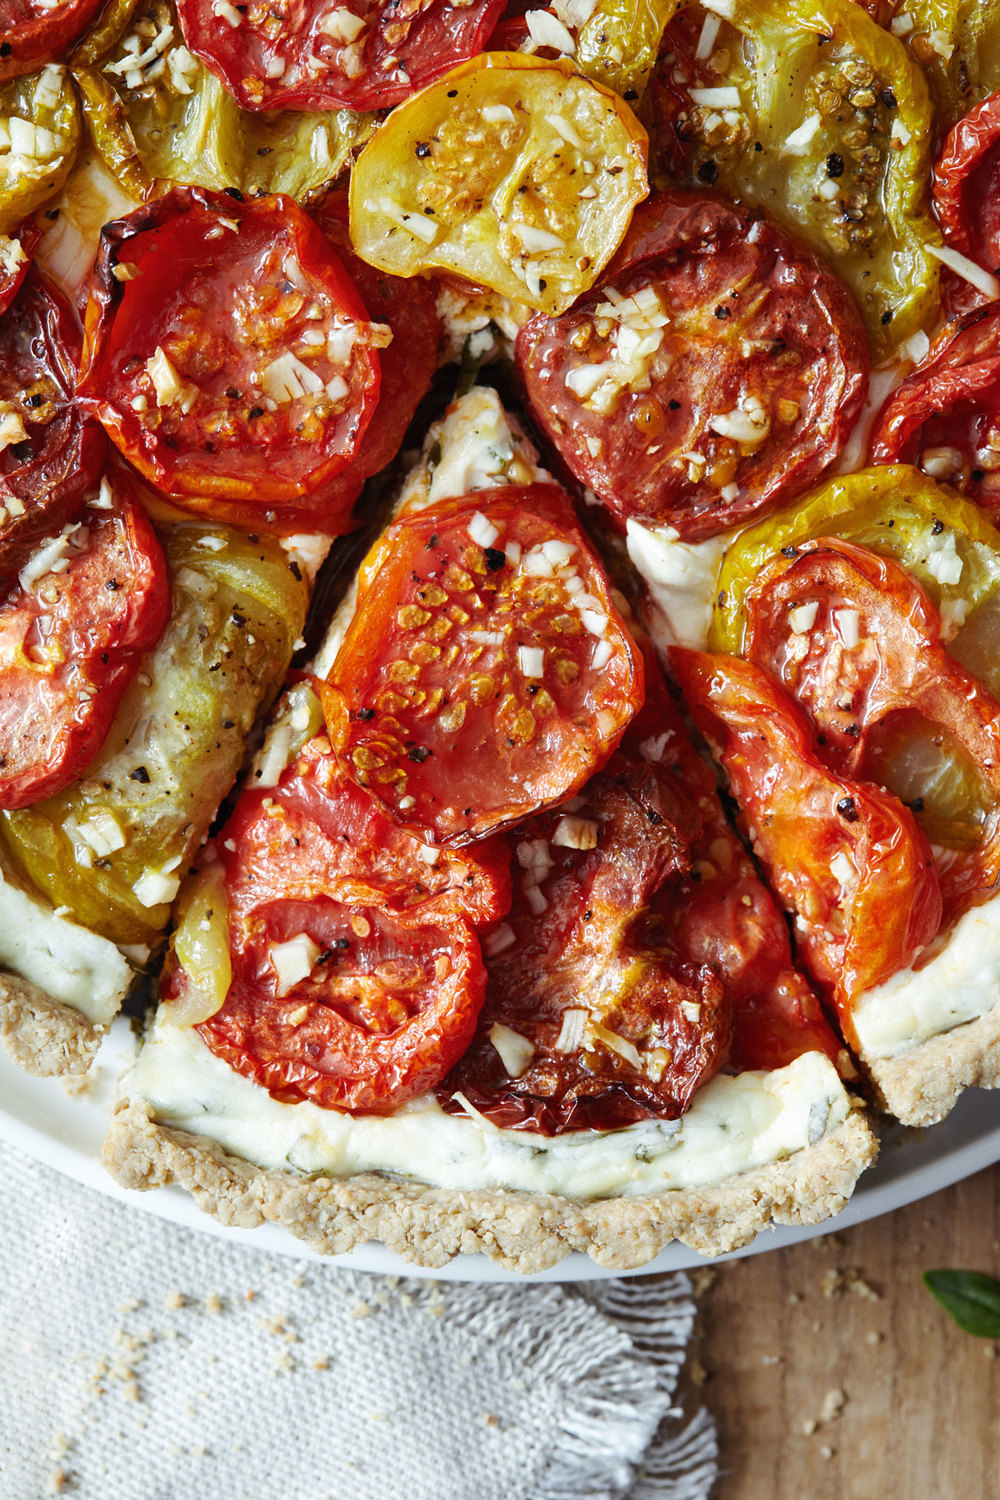 Heirloom Tomato Tart with Gluten Free Crust // Natural Girl Modern World// Vegetarian & Gluten Free